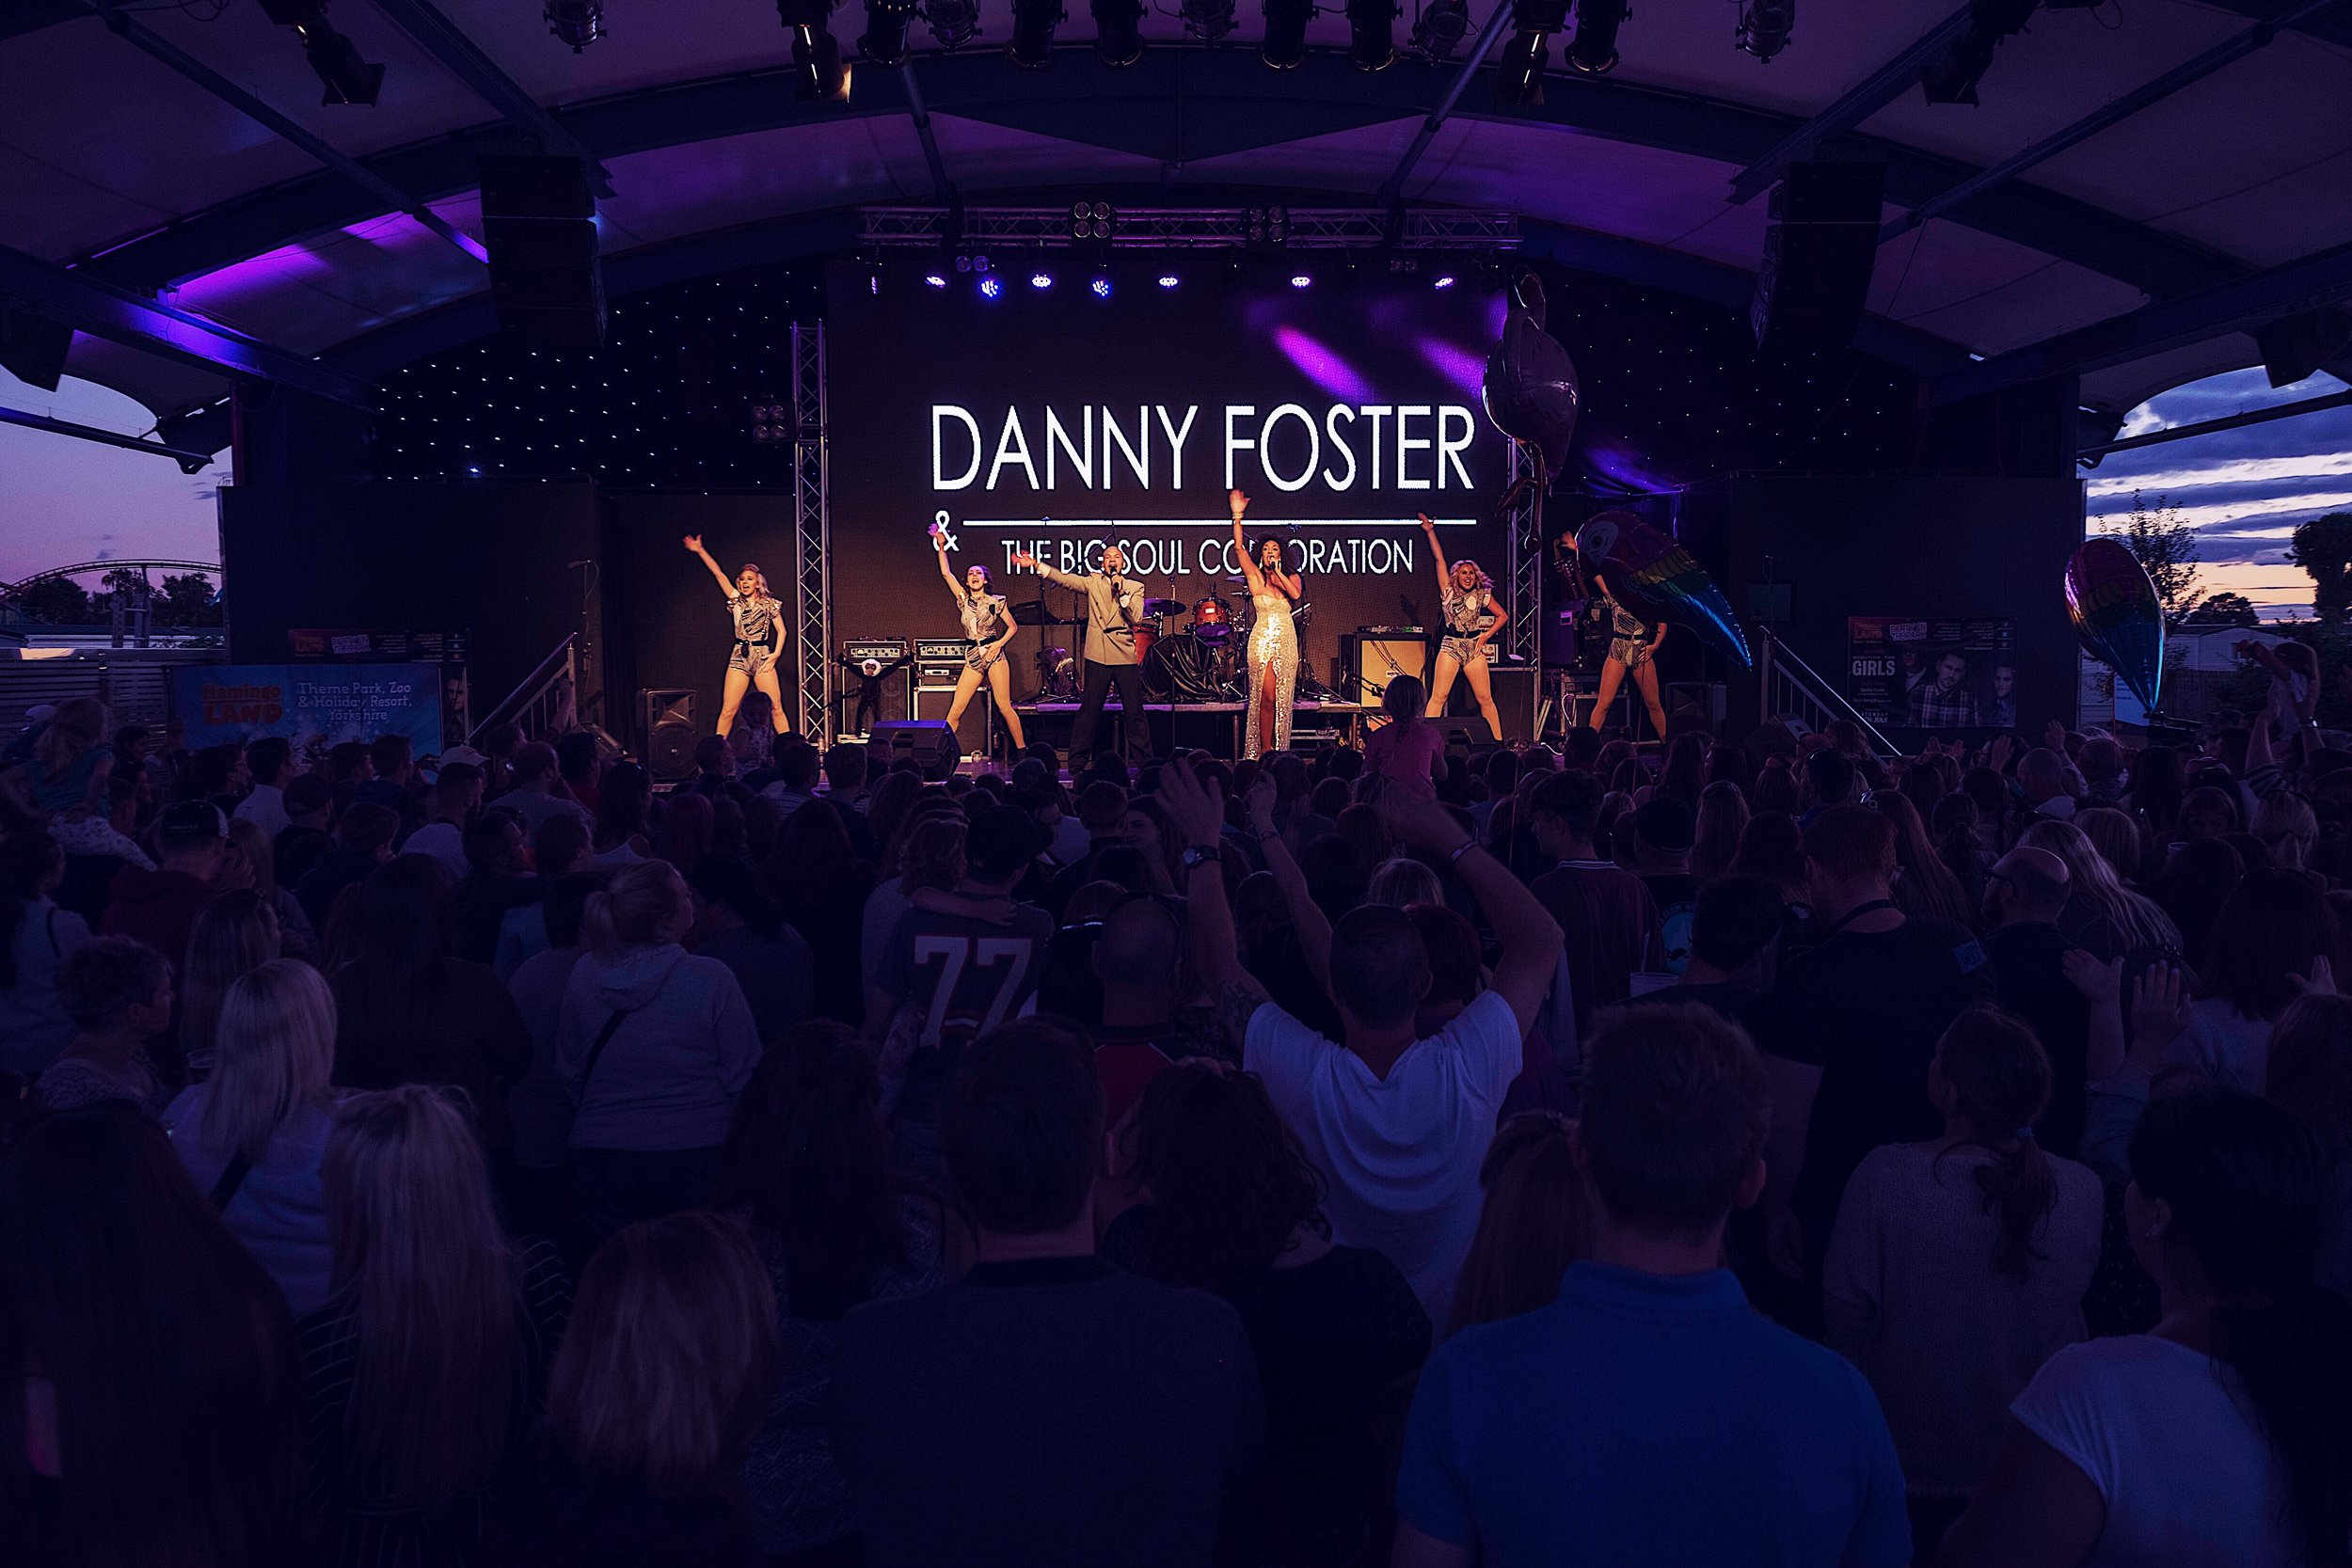 Danny Foster & the BSC_Image13.JPG